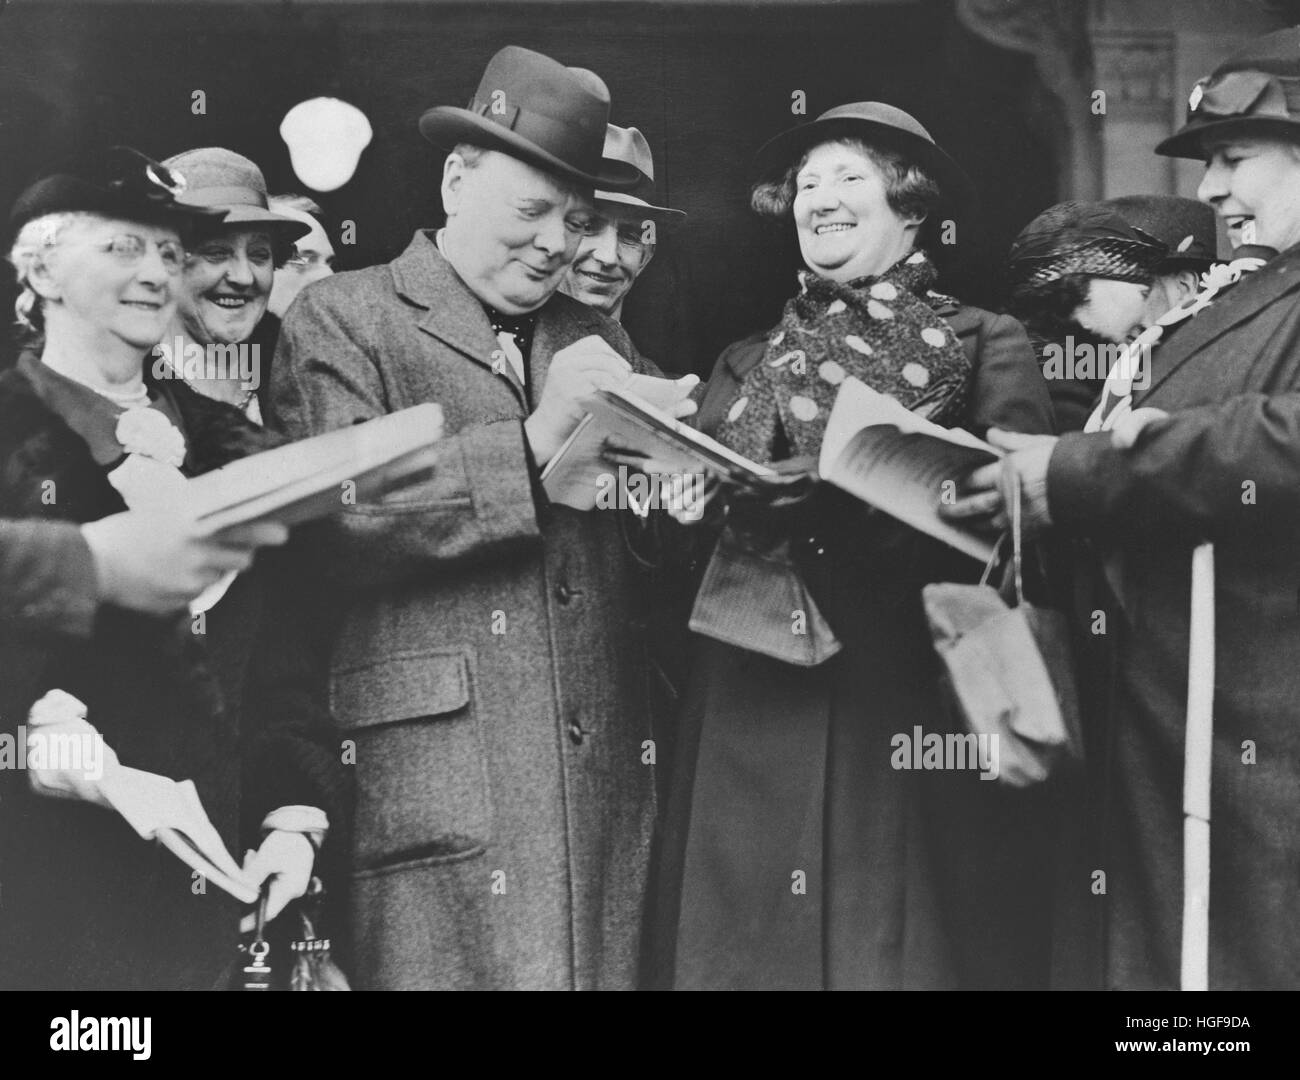 Winston Churchill signing autographs at the opening of the Conservative Party Conference at Scarborough.7th  October - Stock Image